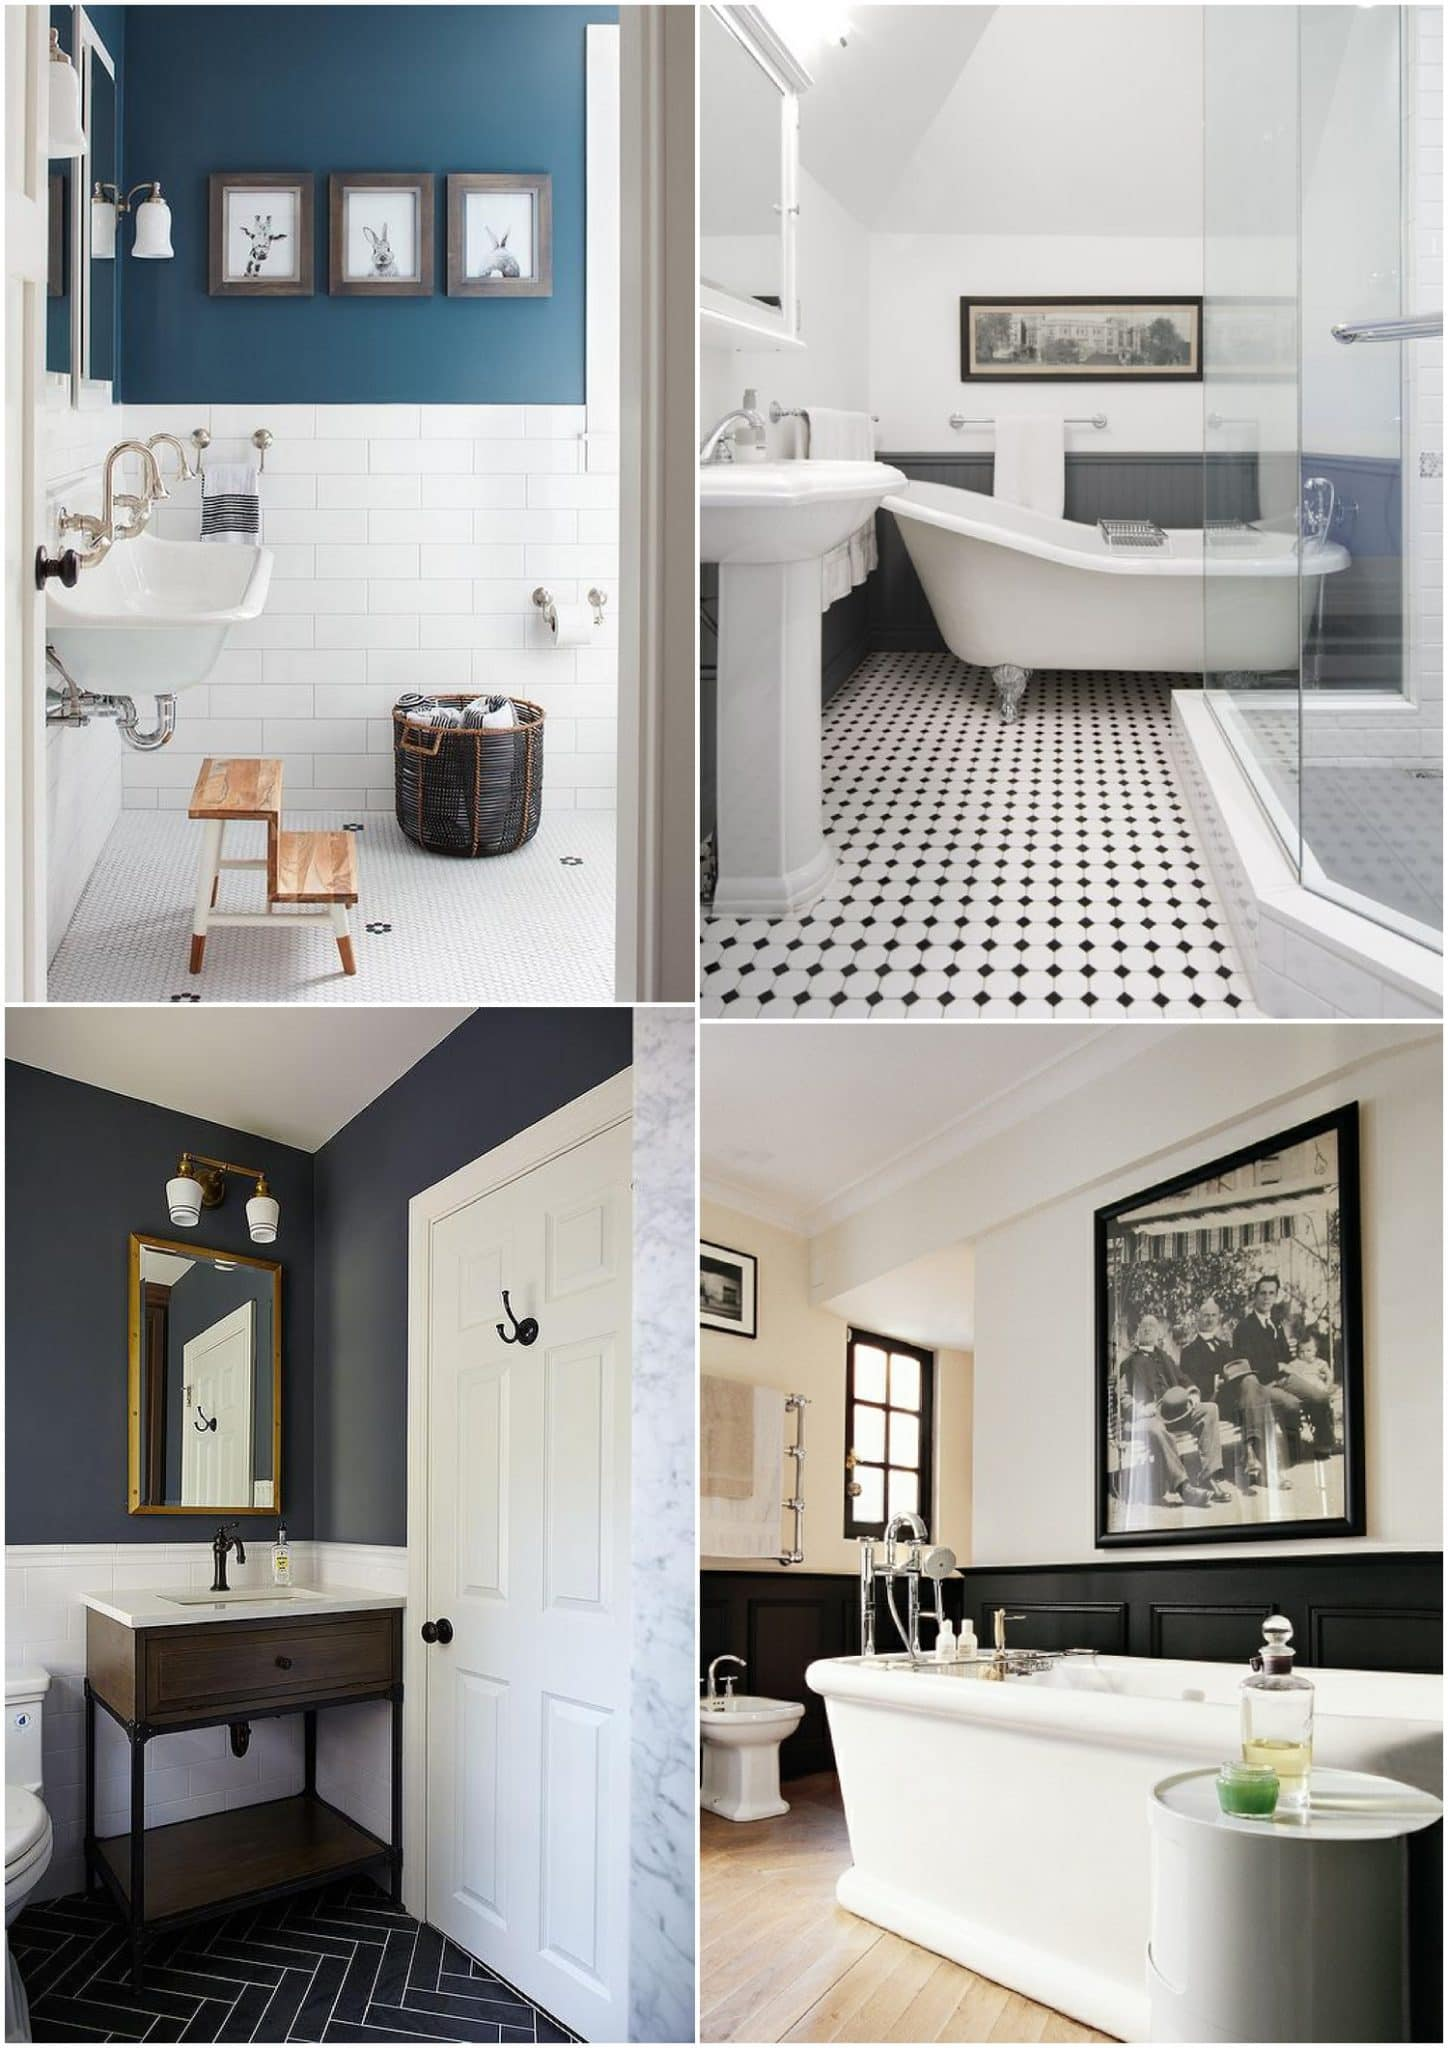 Paneling For Bathroom Wall Paneling Ideas For Bathroom Wall Paneling